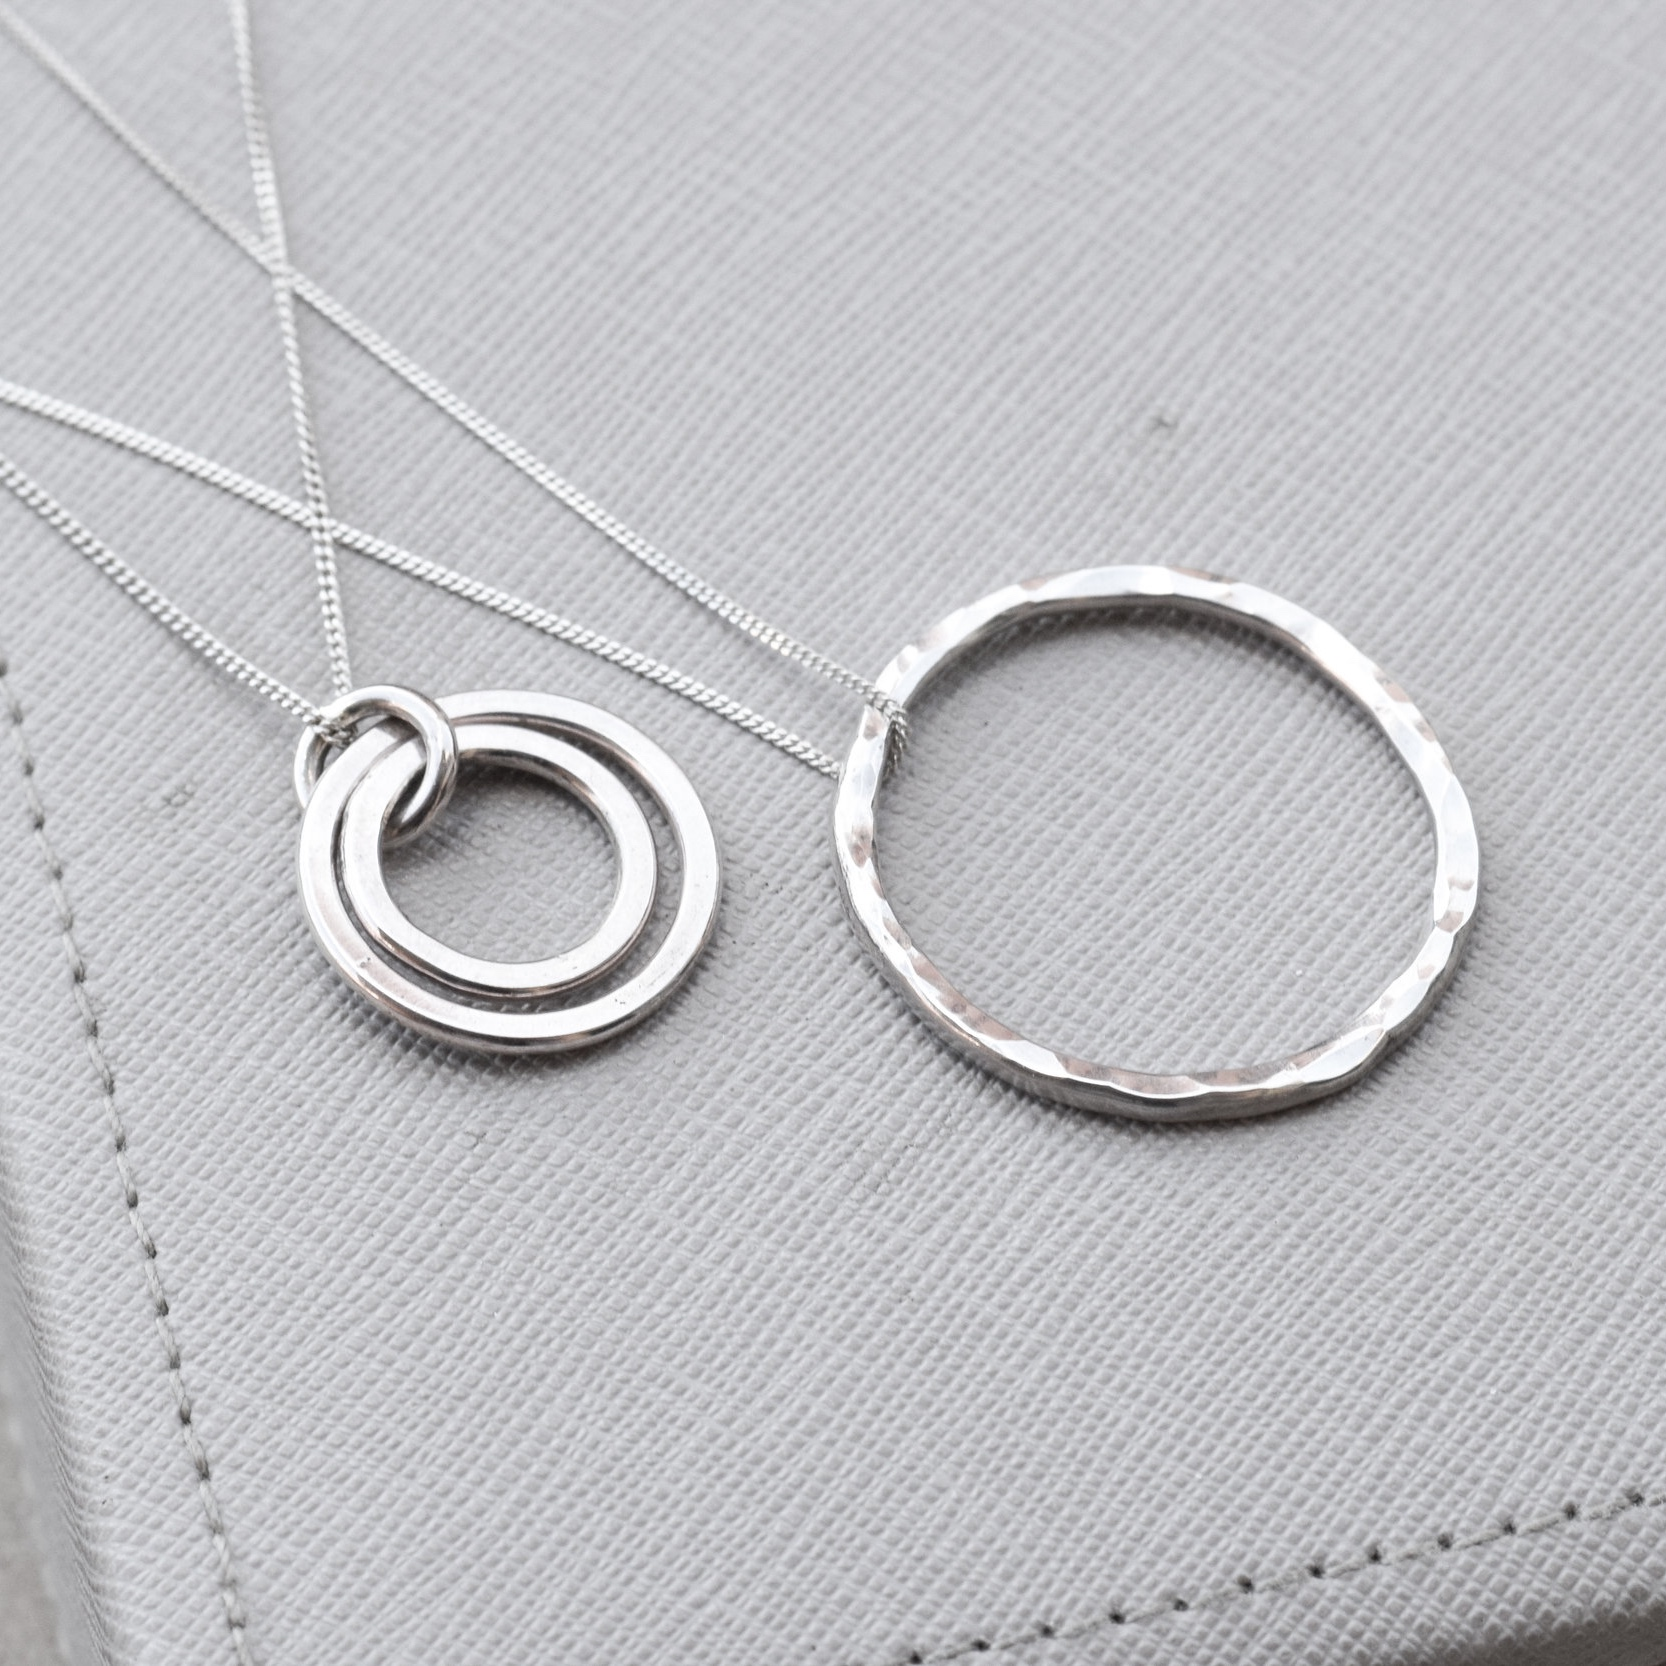 Make your own halo pendant workshop - £55 -